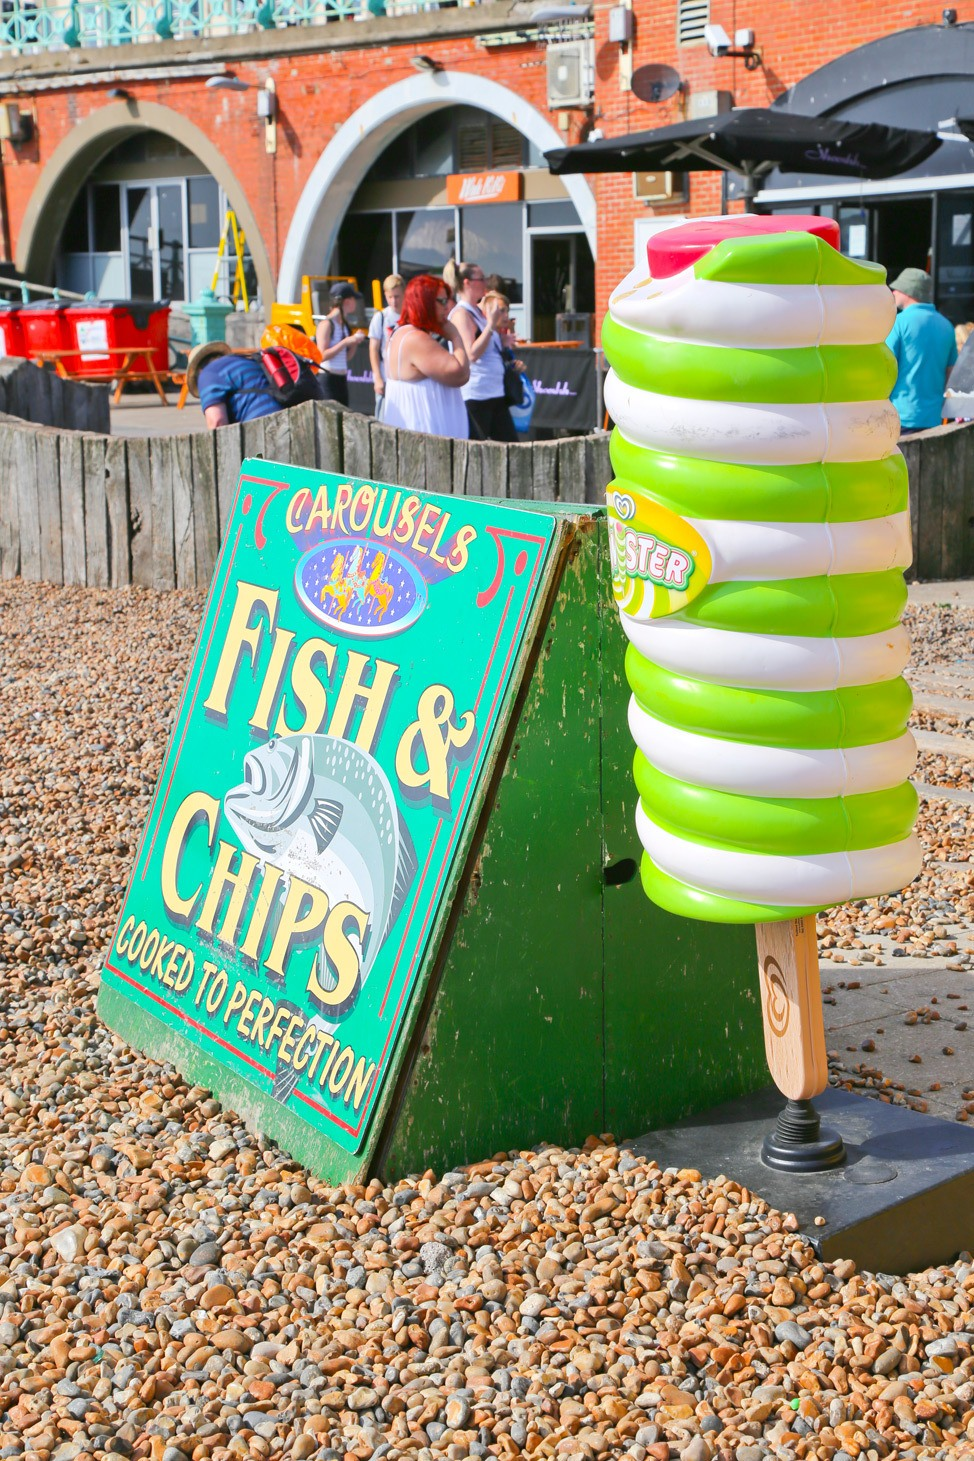 Fish and Chips Sign, Brighton, England